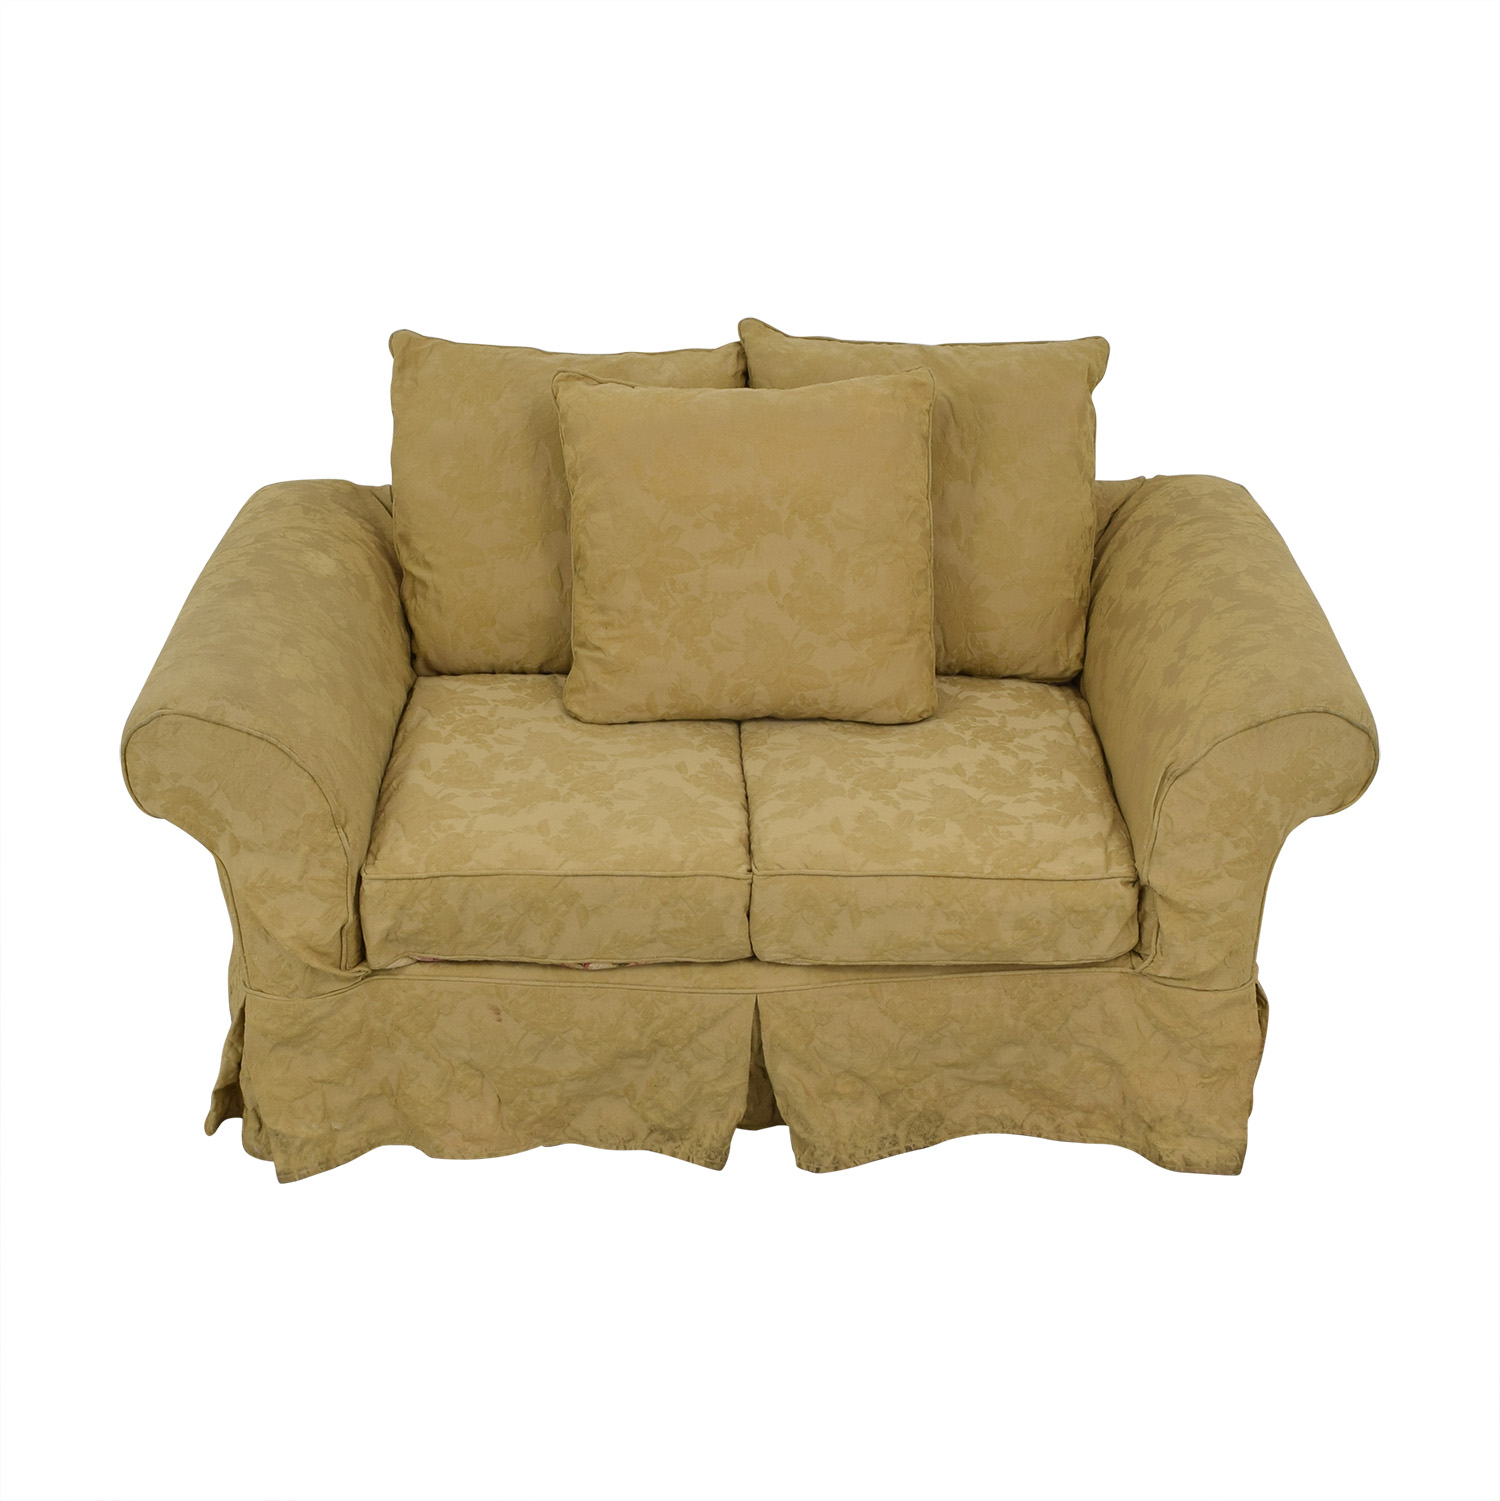 Domain French Country Style Loveseat